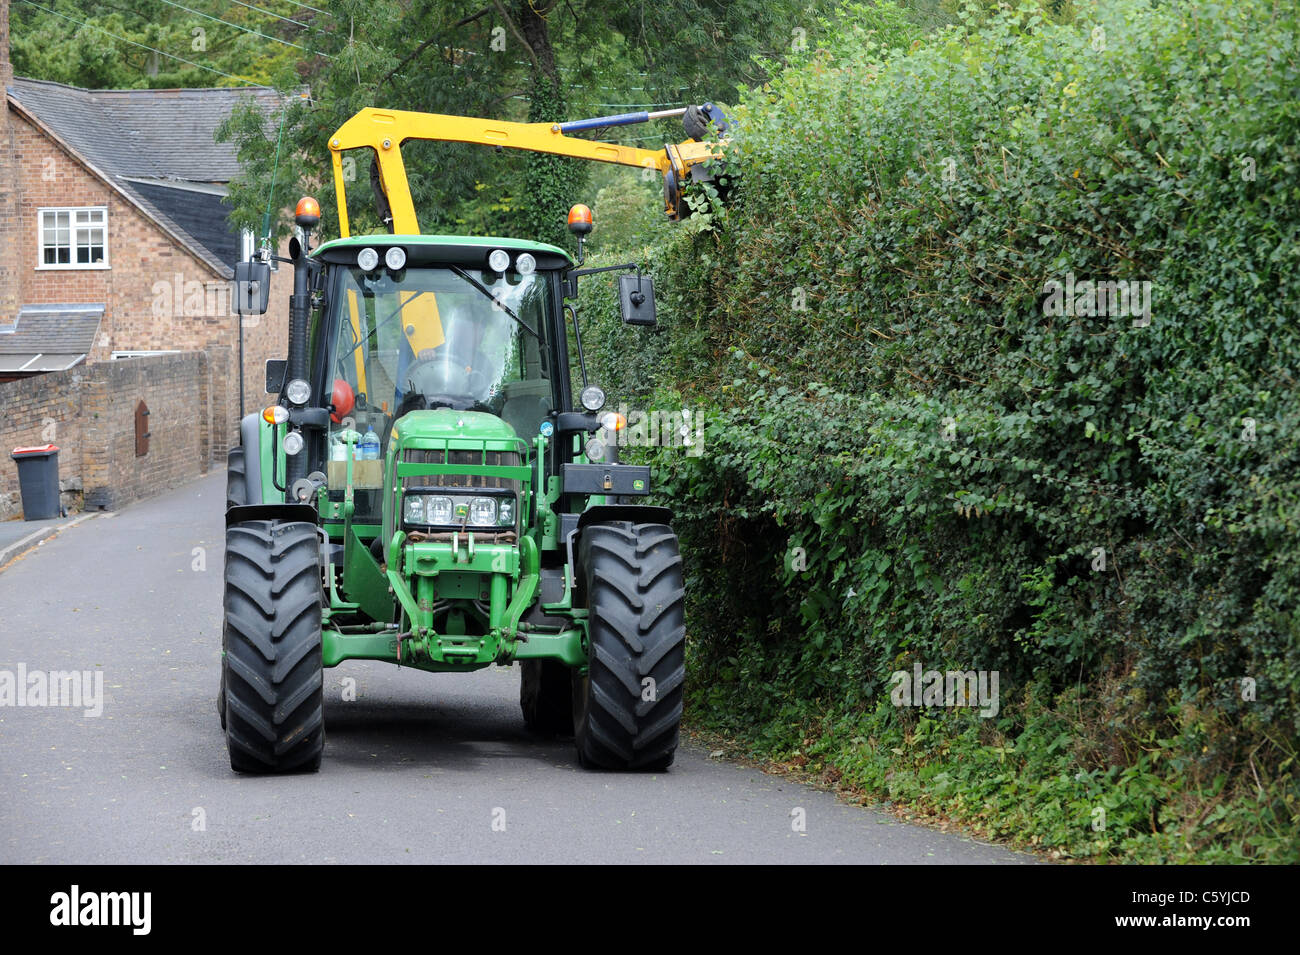 Tractor with hedge cutter uk - Stock Image